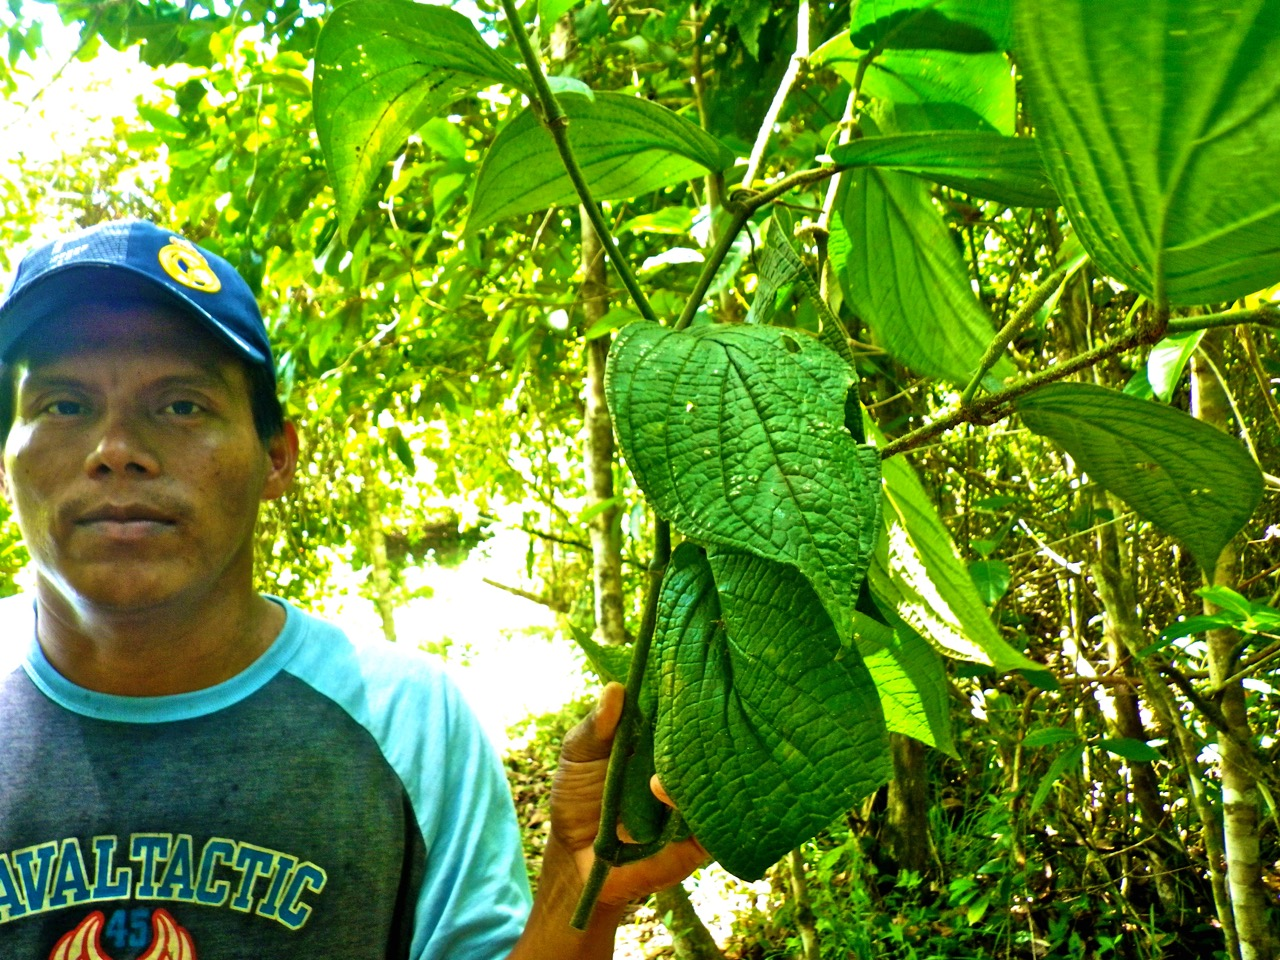 One of our Curandero Friends Showing a Plant Used for Treating Fever